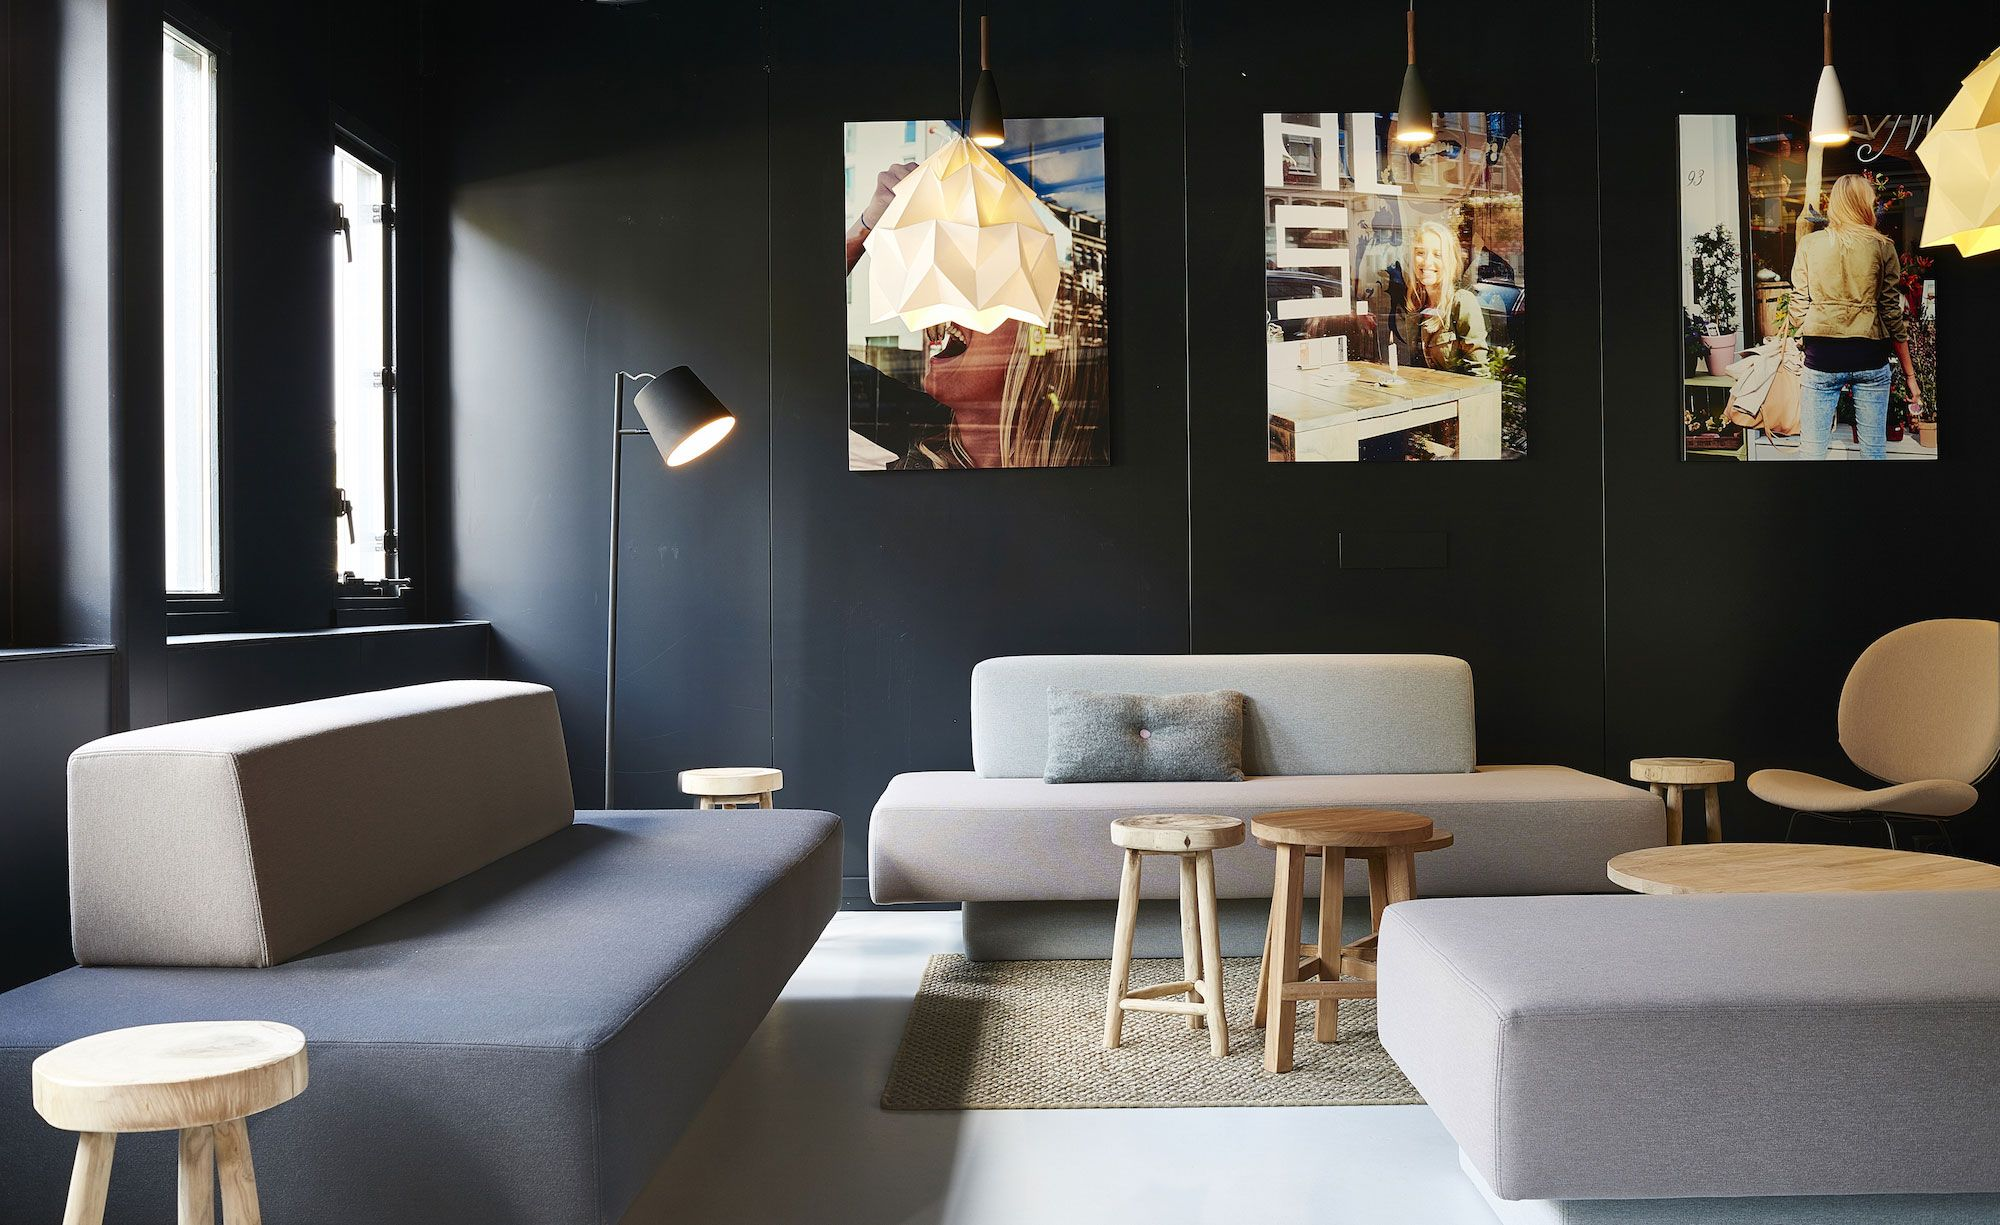 This Transcontinental Back To Work Hospitality Project Good Hotel Amsterdam Really Floats Our Boat